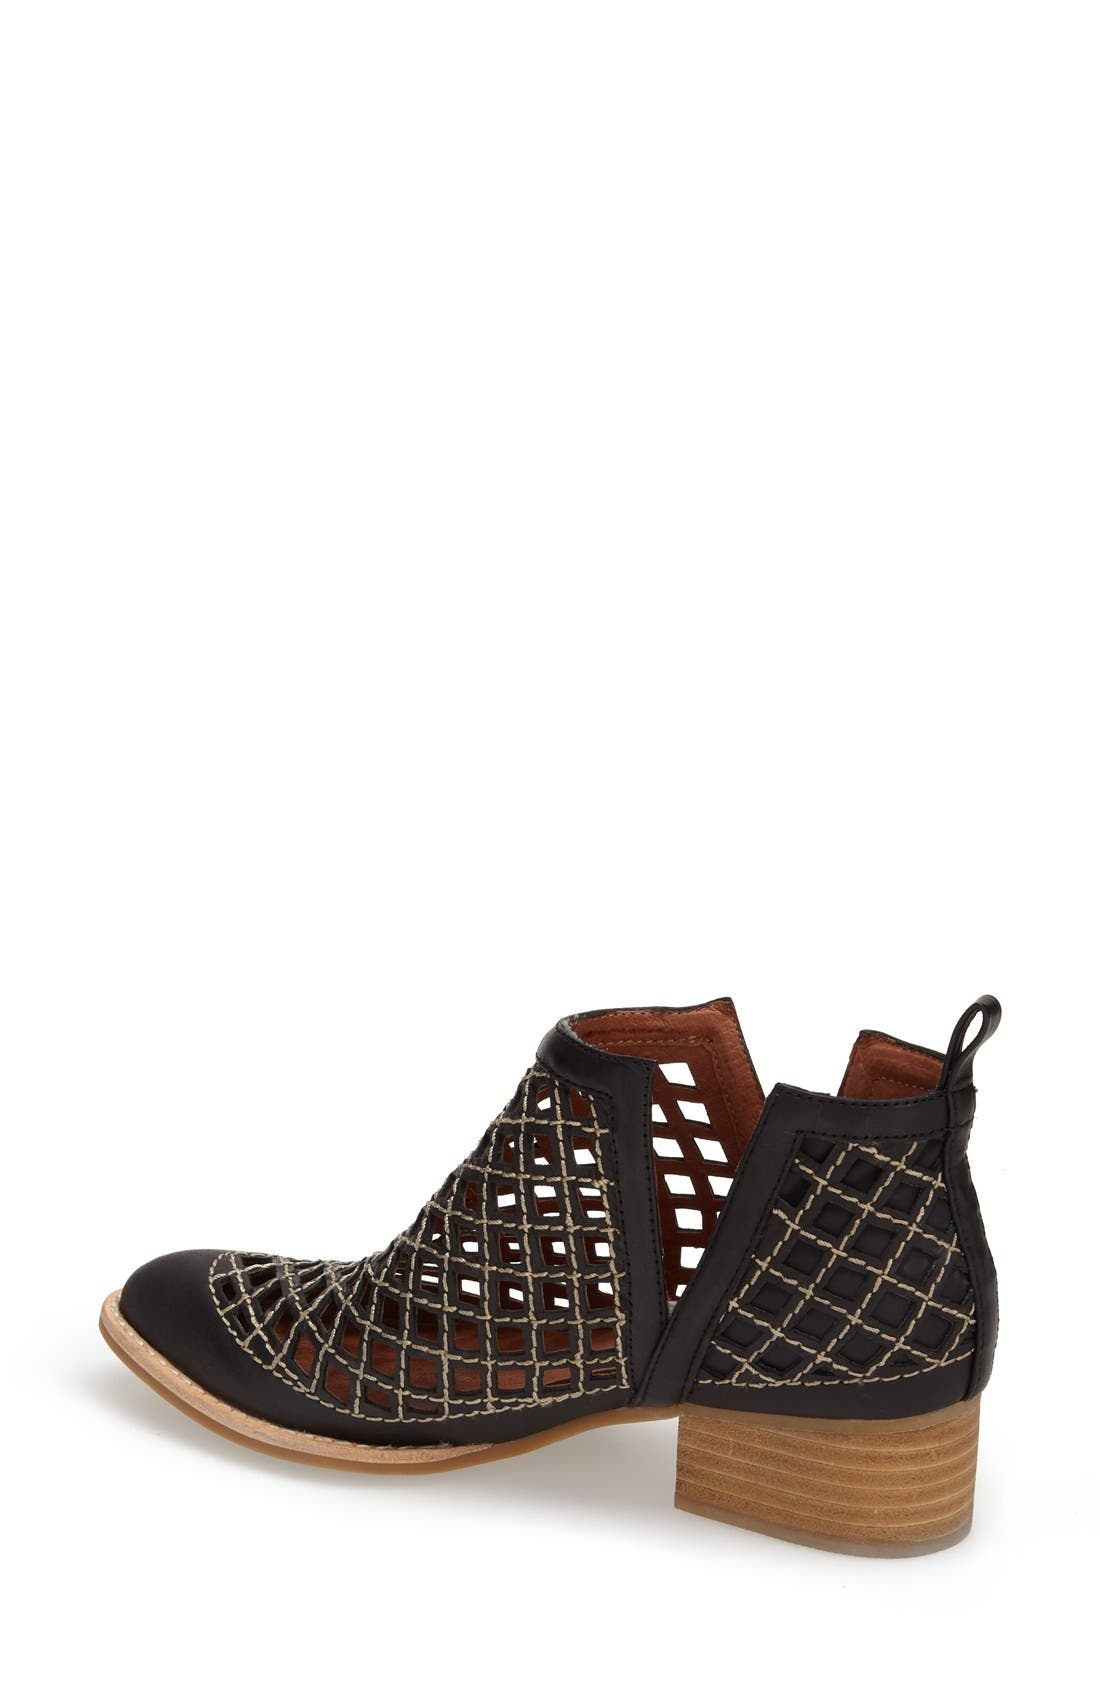 Taggart Ankle Boot,                             Alternate thumbnail 2, color,                             001